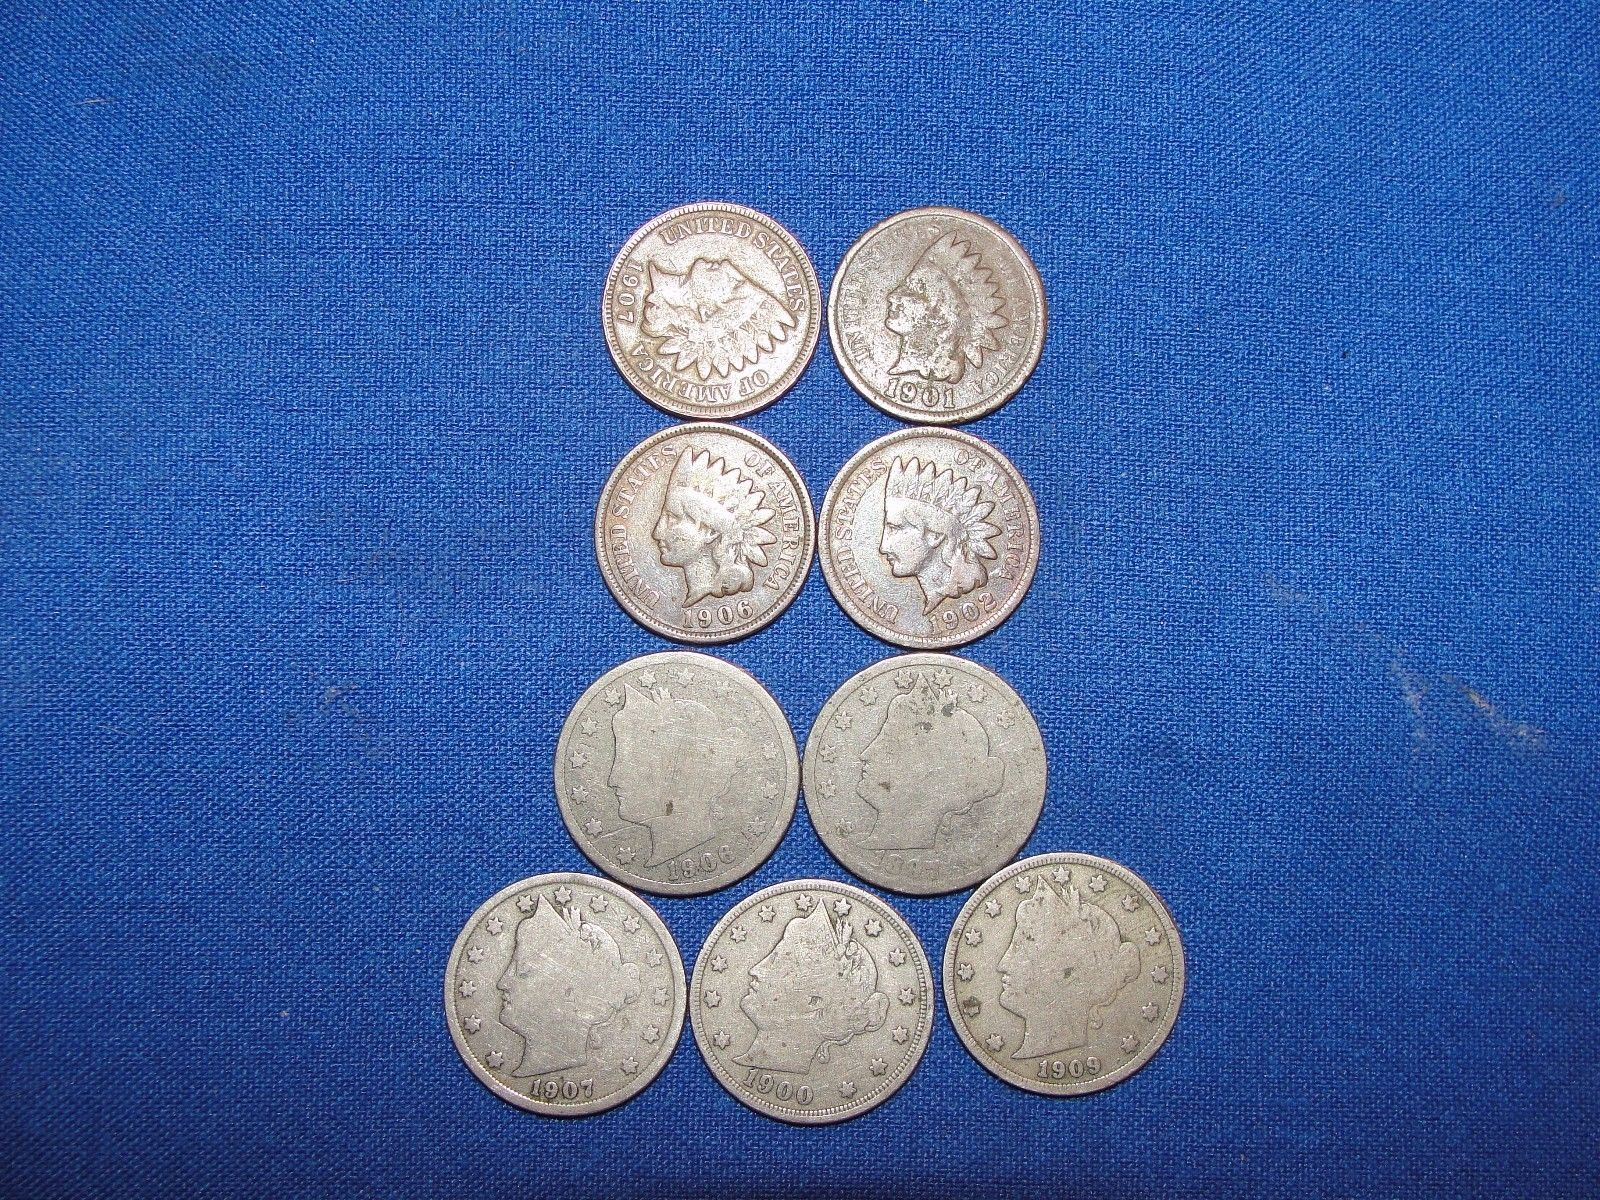 coins 9 us coins 5 v liberty head nickels 4 indian head